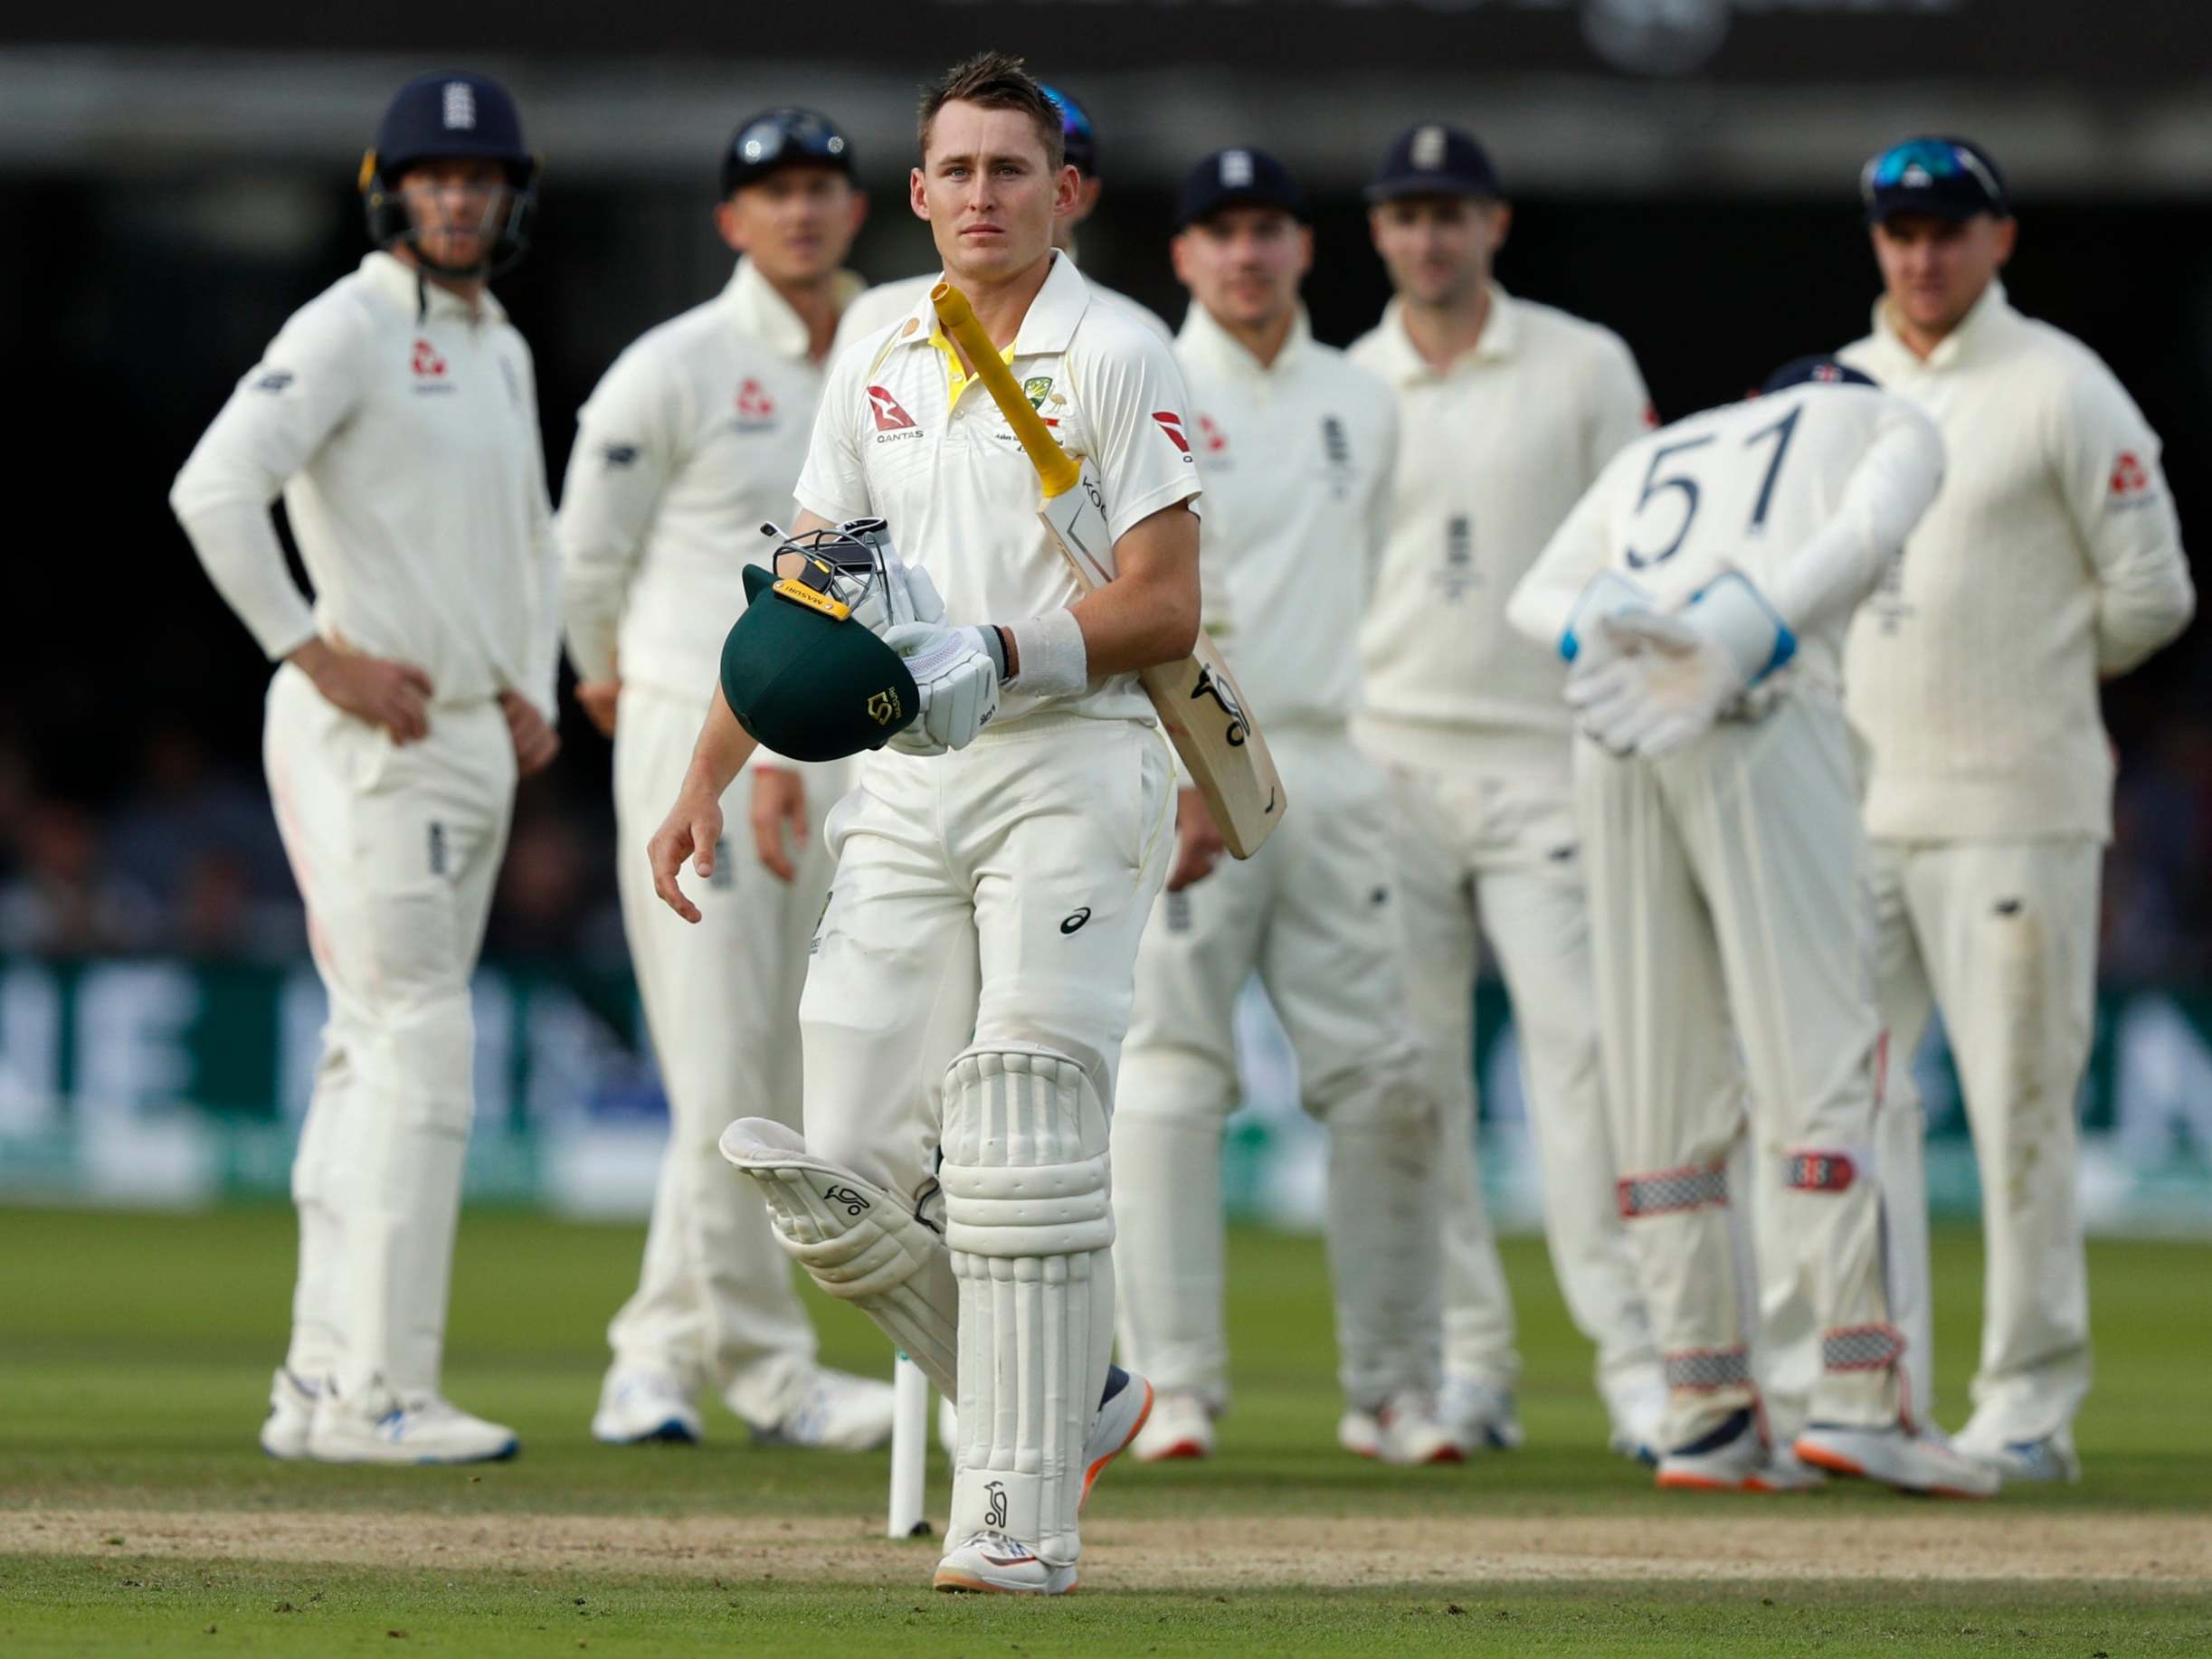 England vs Australia: Marnus Labuschagne's Test-saving Ashes debut will live long in the memory